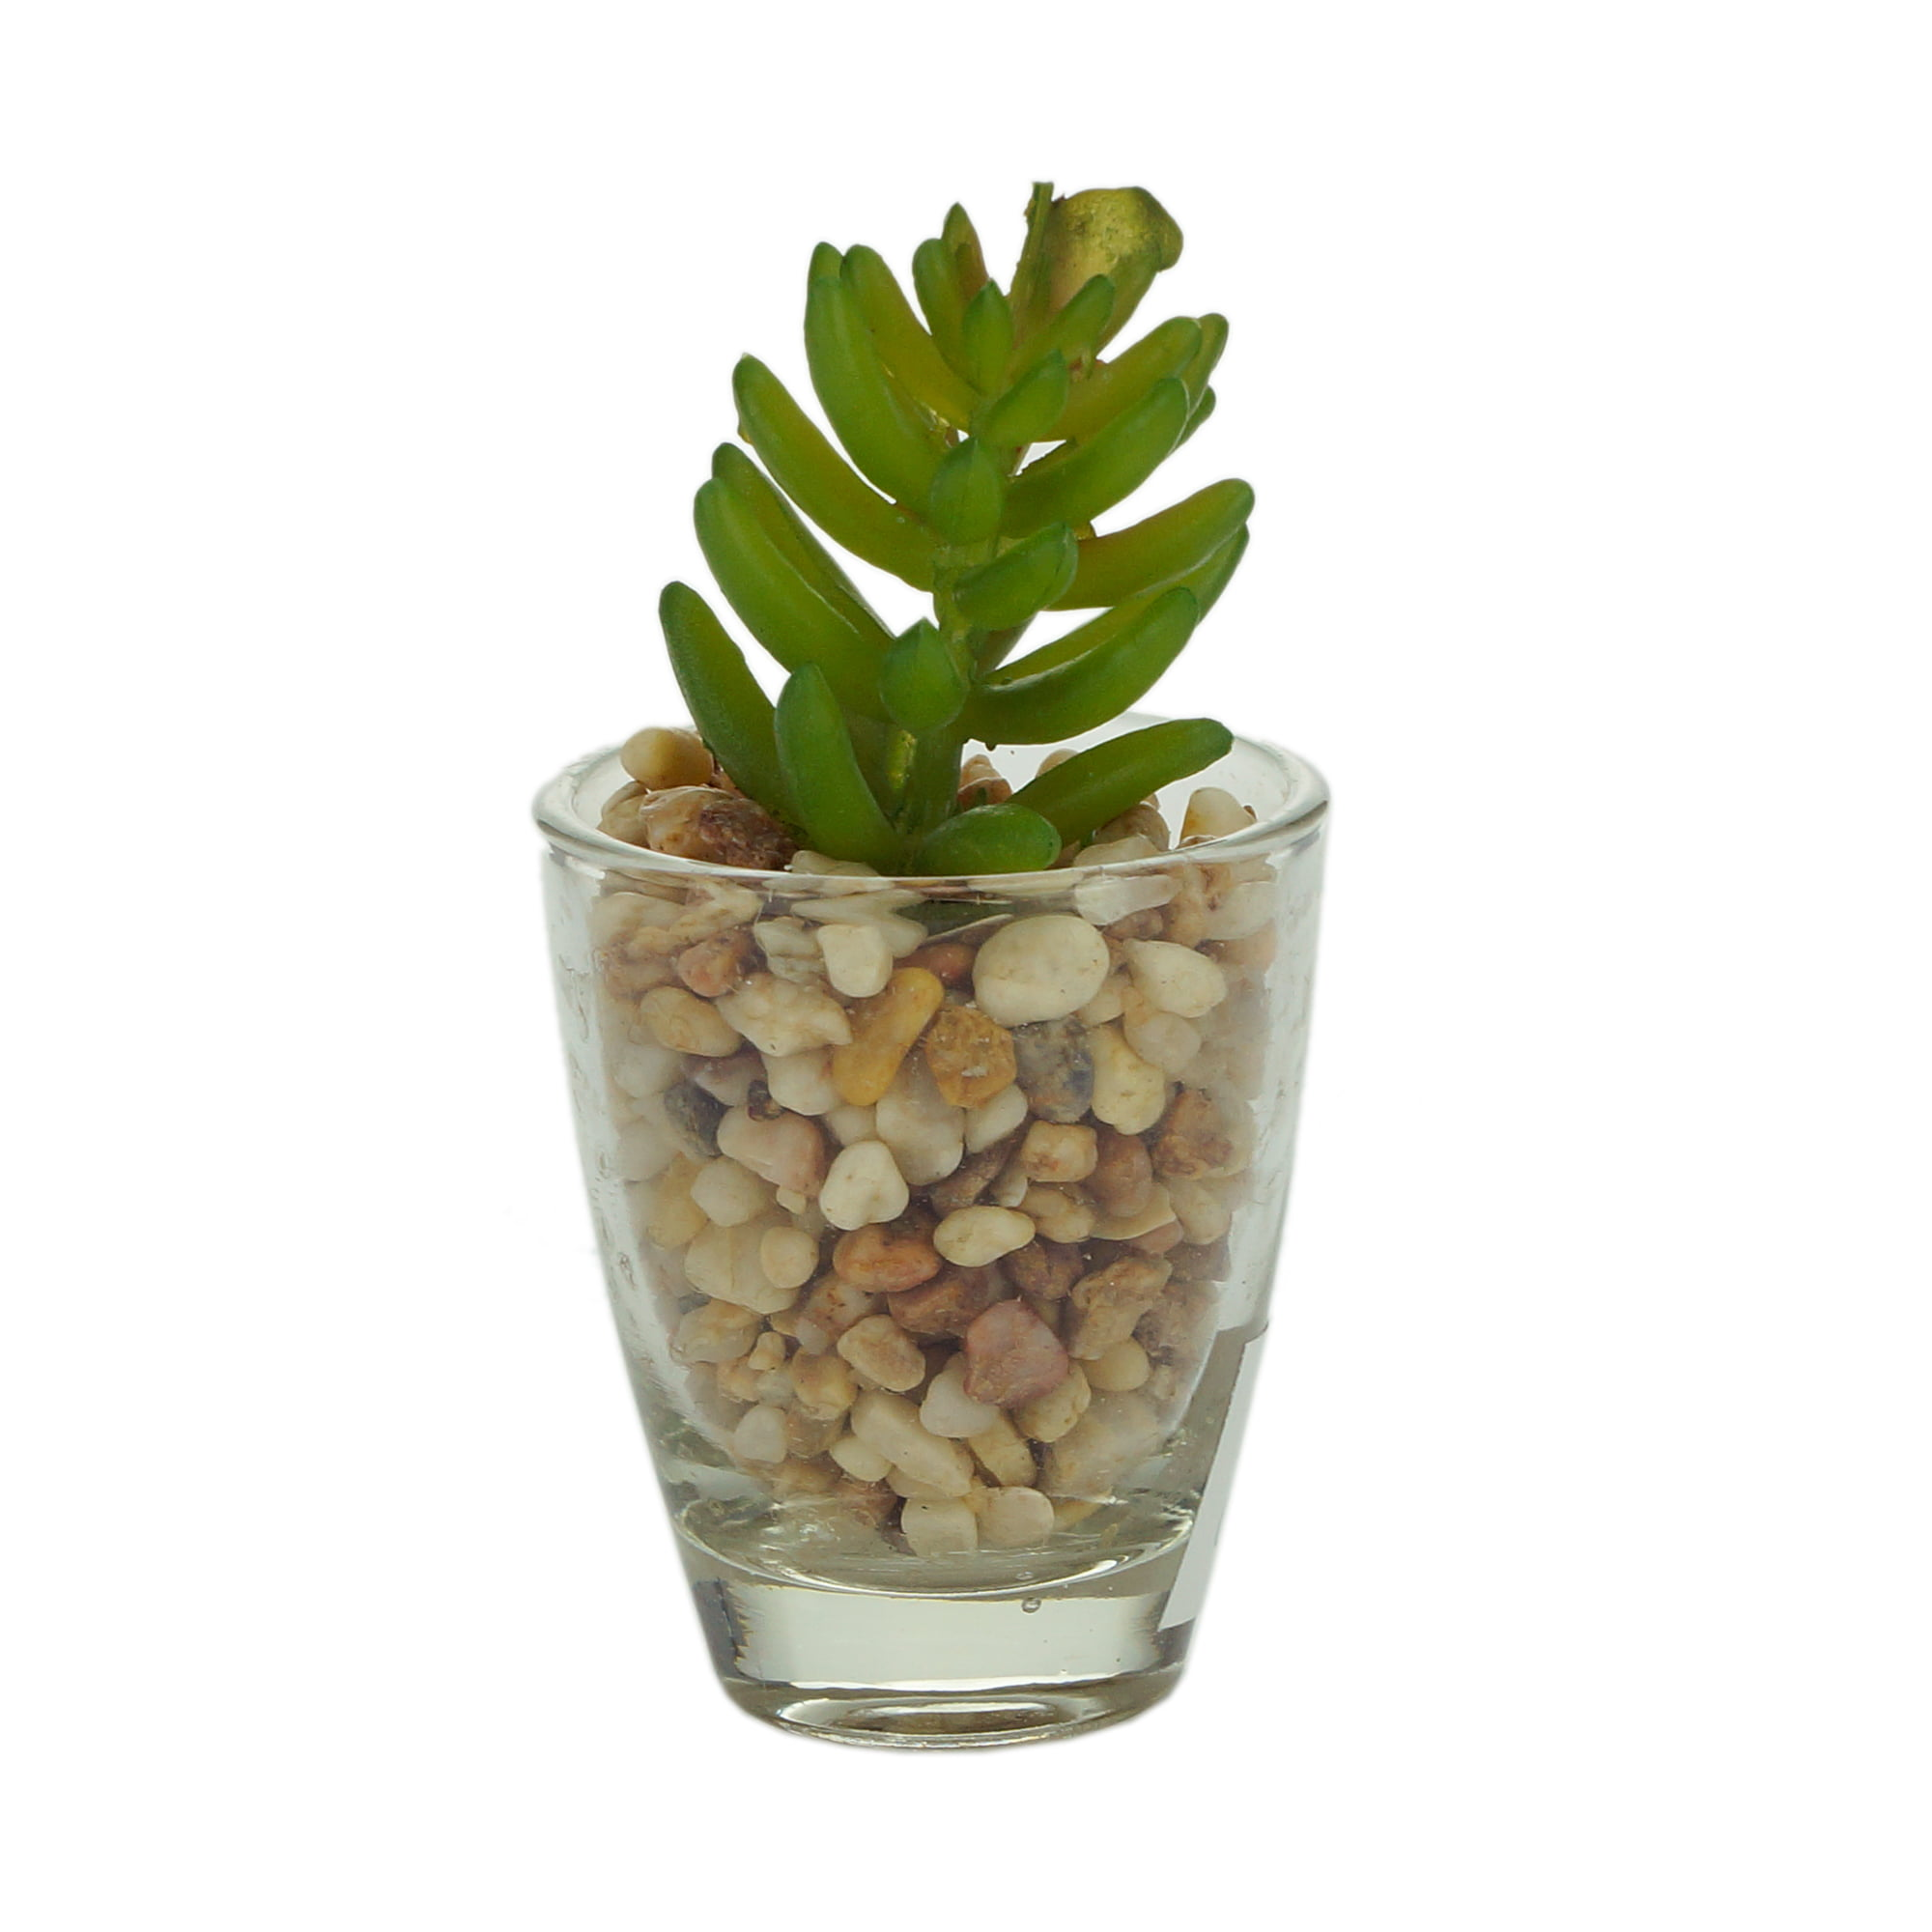 MINI VASO VIDRO LITTLE ROCKS VERDE COM PLANTA